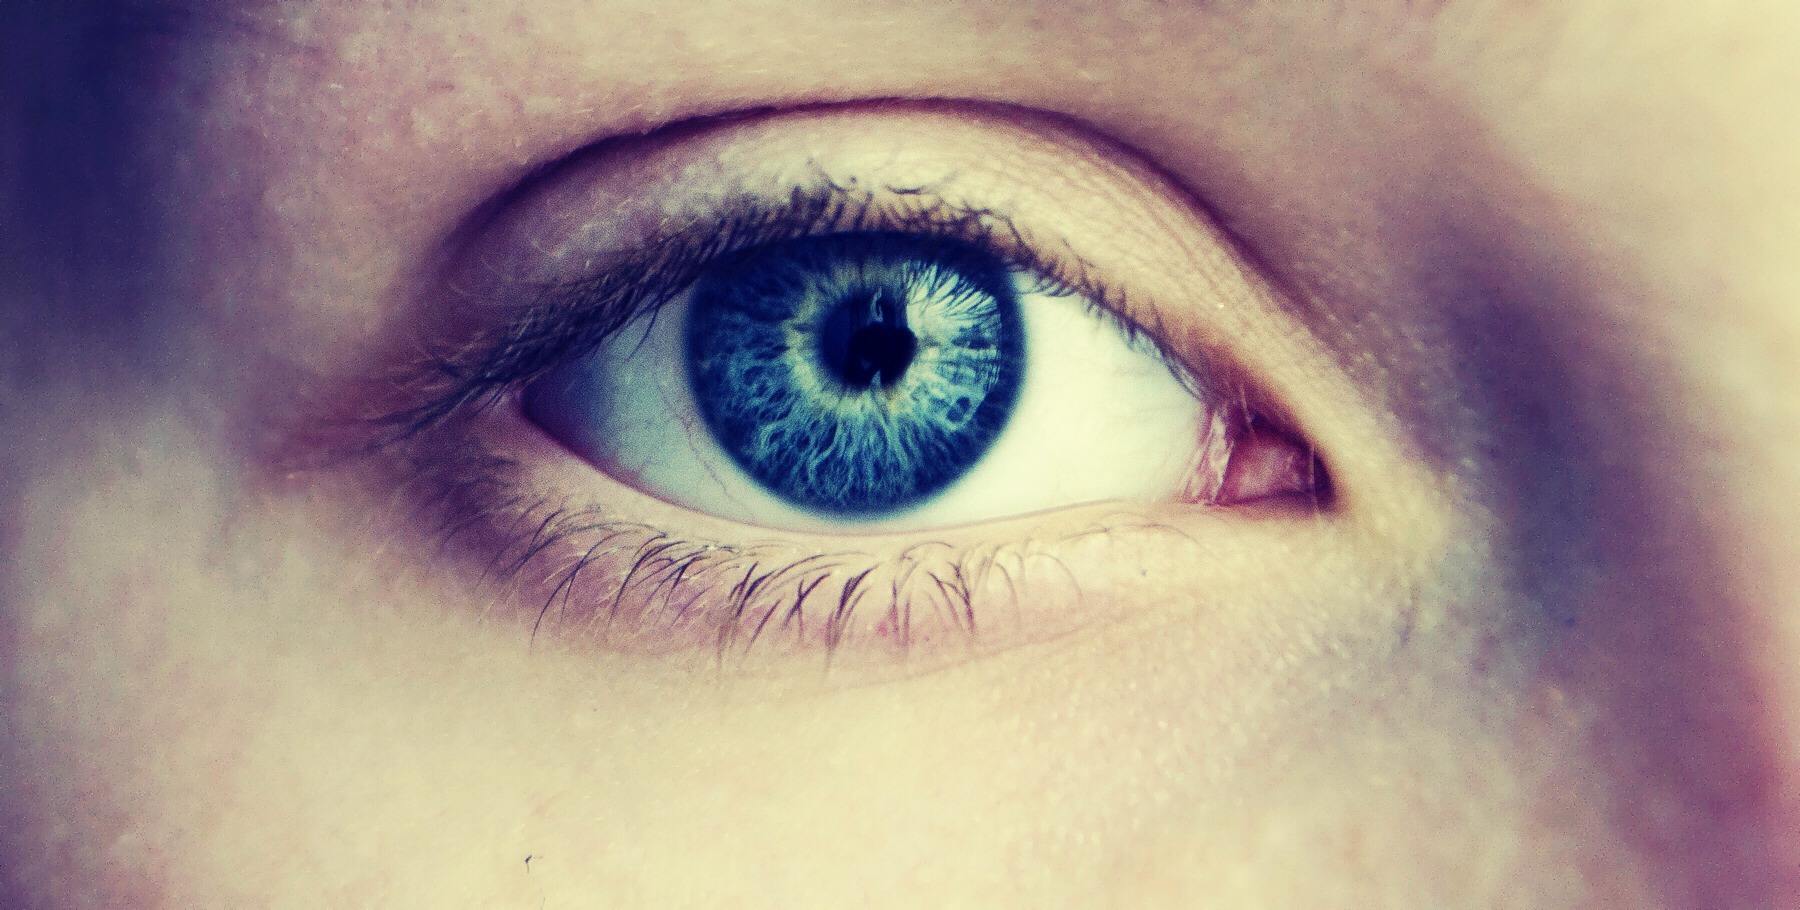 No one wants boring eyes like this...